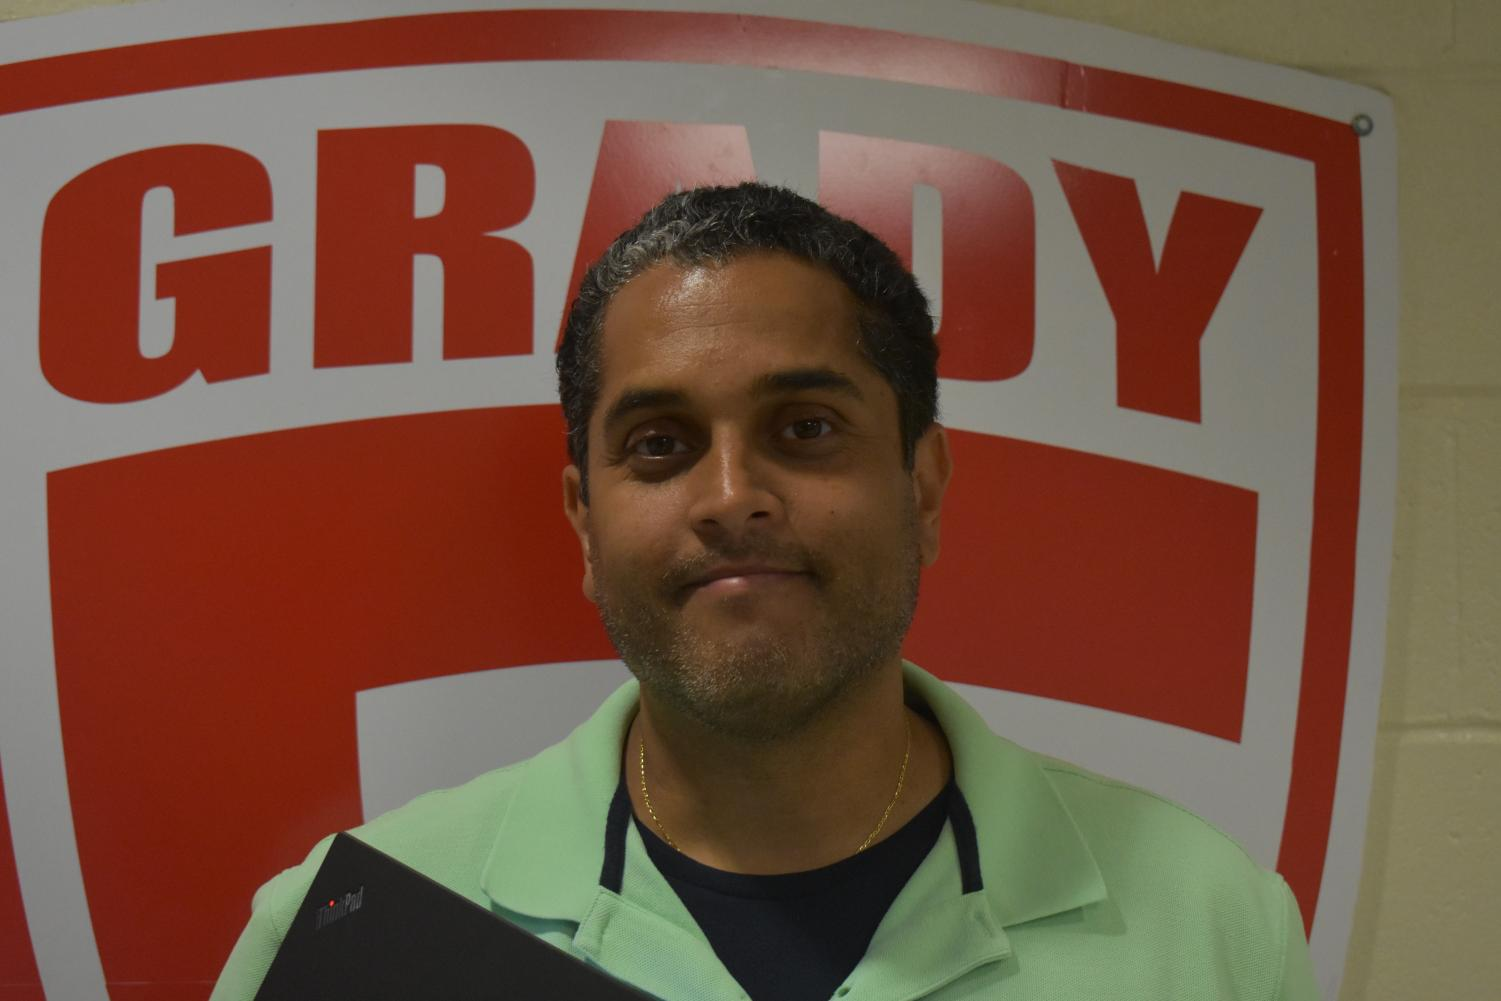 Byron Barnes, school business manager, lives 13 miles away from Grady.